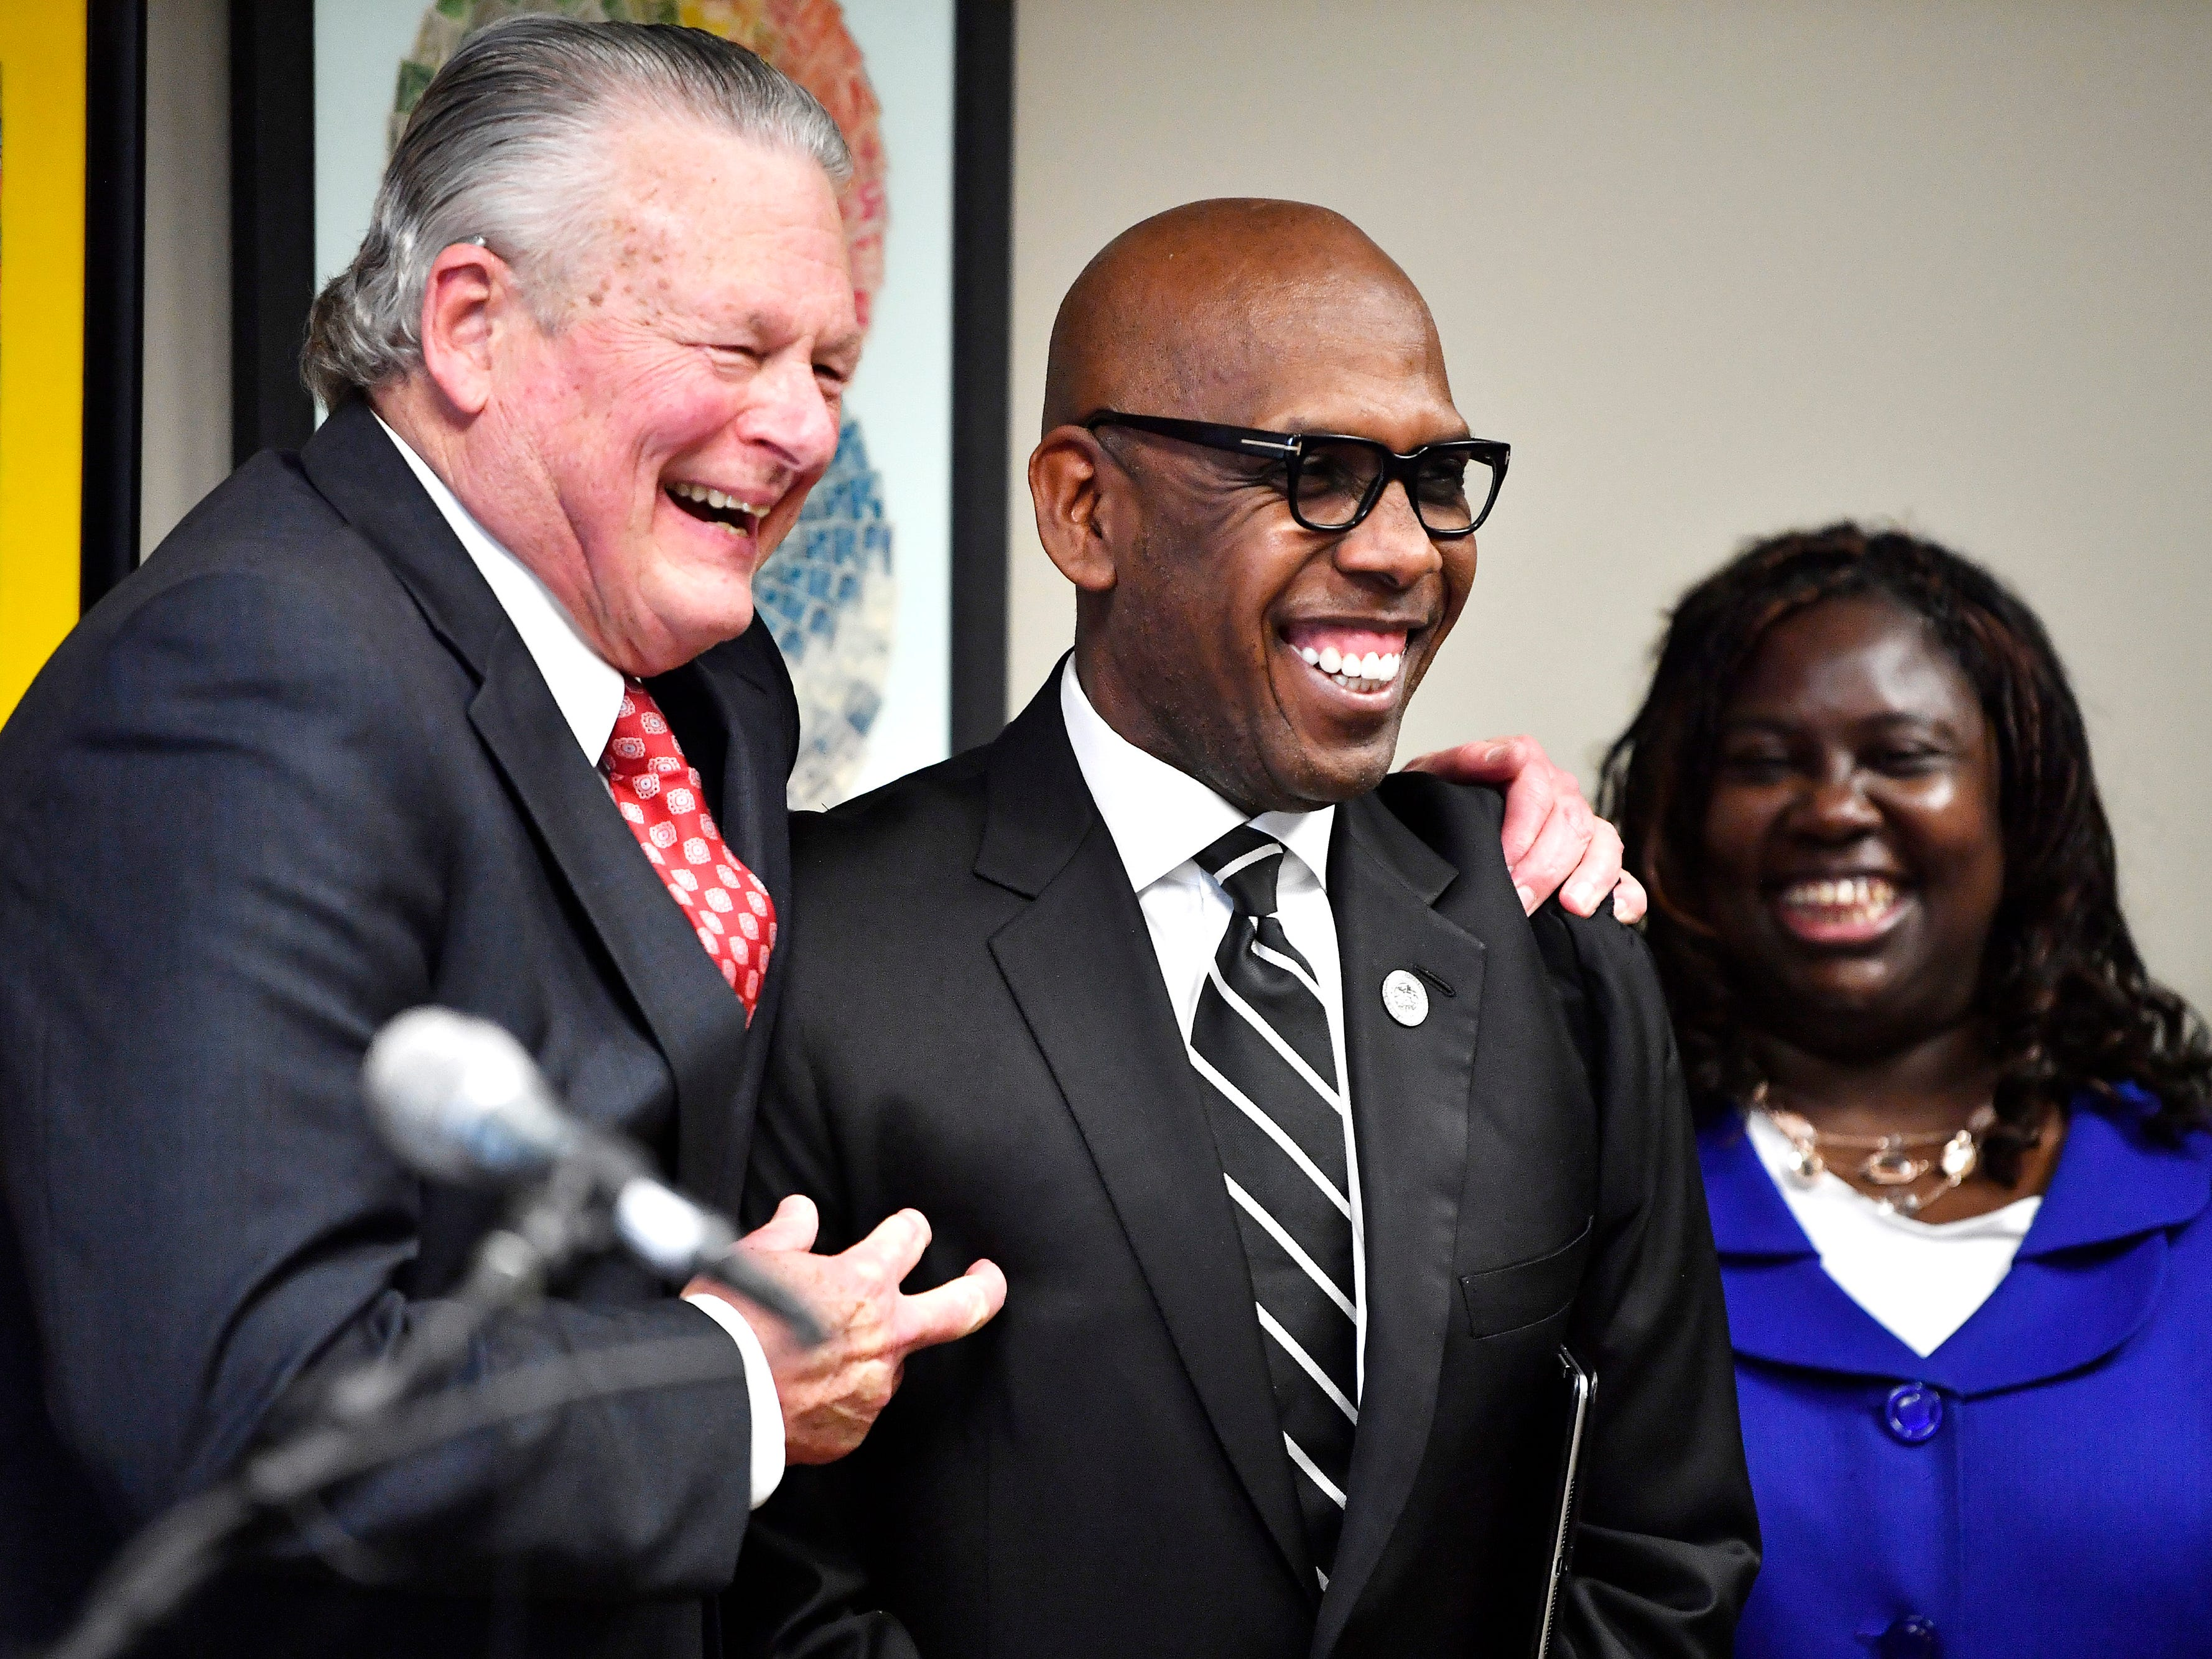 Attorney Charles Bone celebrates Gov. Bill Haslam's clemency ruling with Bishop Joseph Walker as Juvenile Court Judge Sheila Calloway looks on at a press conference Monday, Jan. 7, 2019, in Nashville, Tenn., after Haslam granted full clemency to Cyntoia Brown, and set an Aug. 7 release date for her from prison.